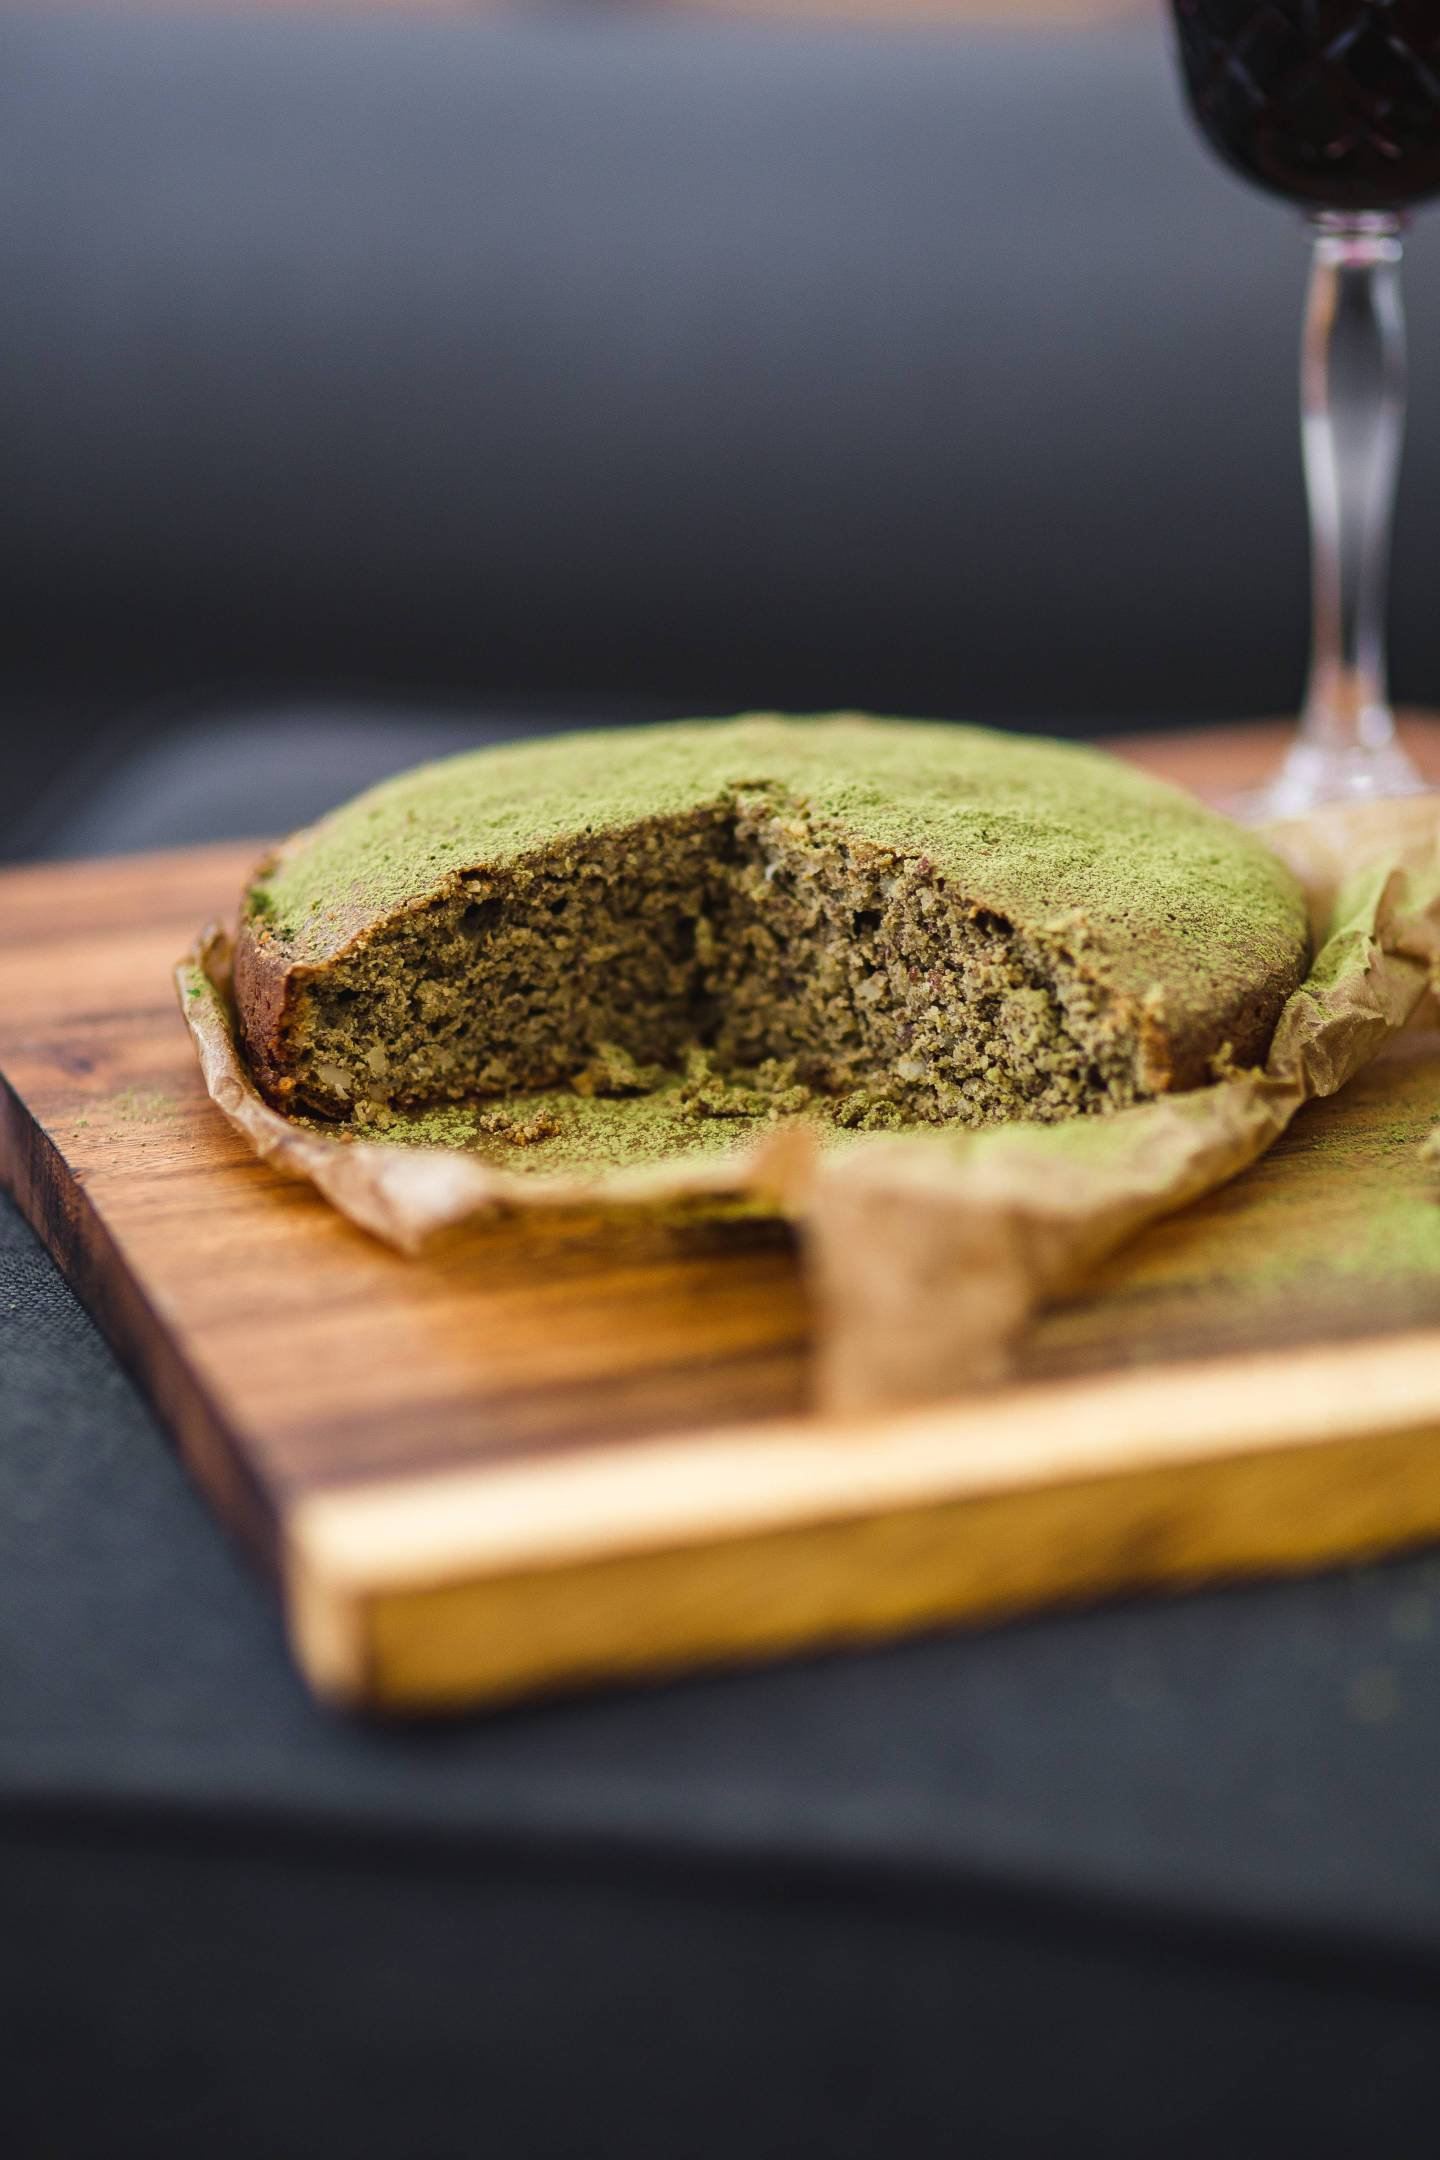 kaboompics_Delicious homemade matcha cake on a wooden board